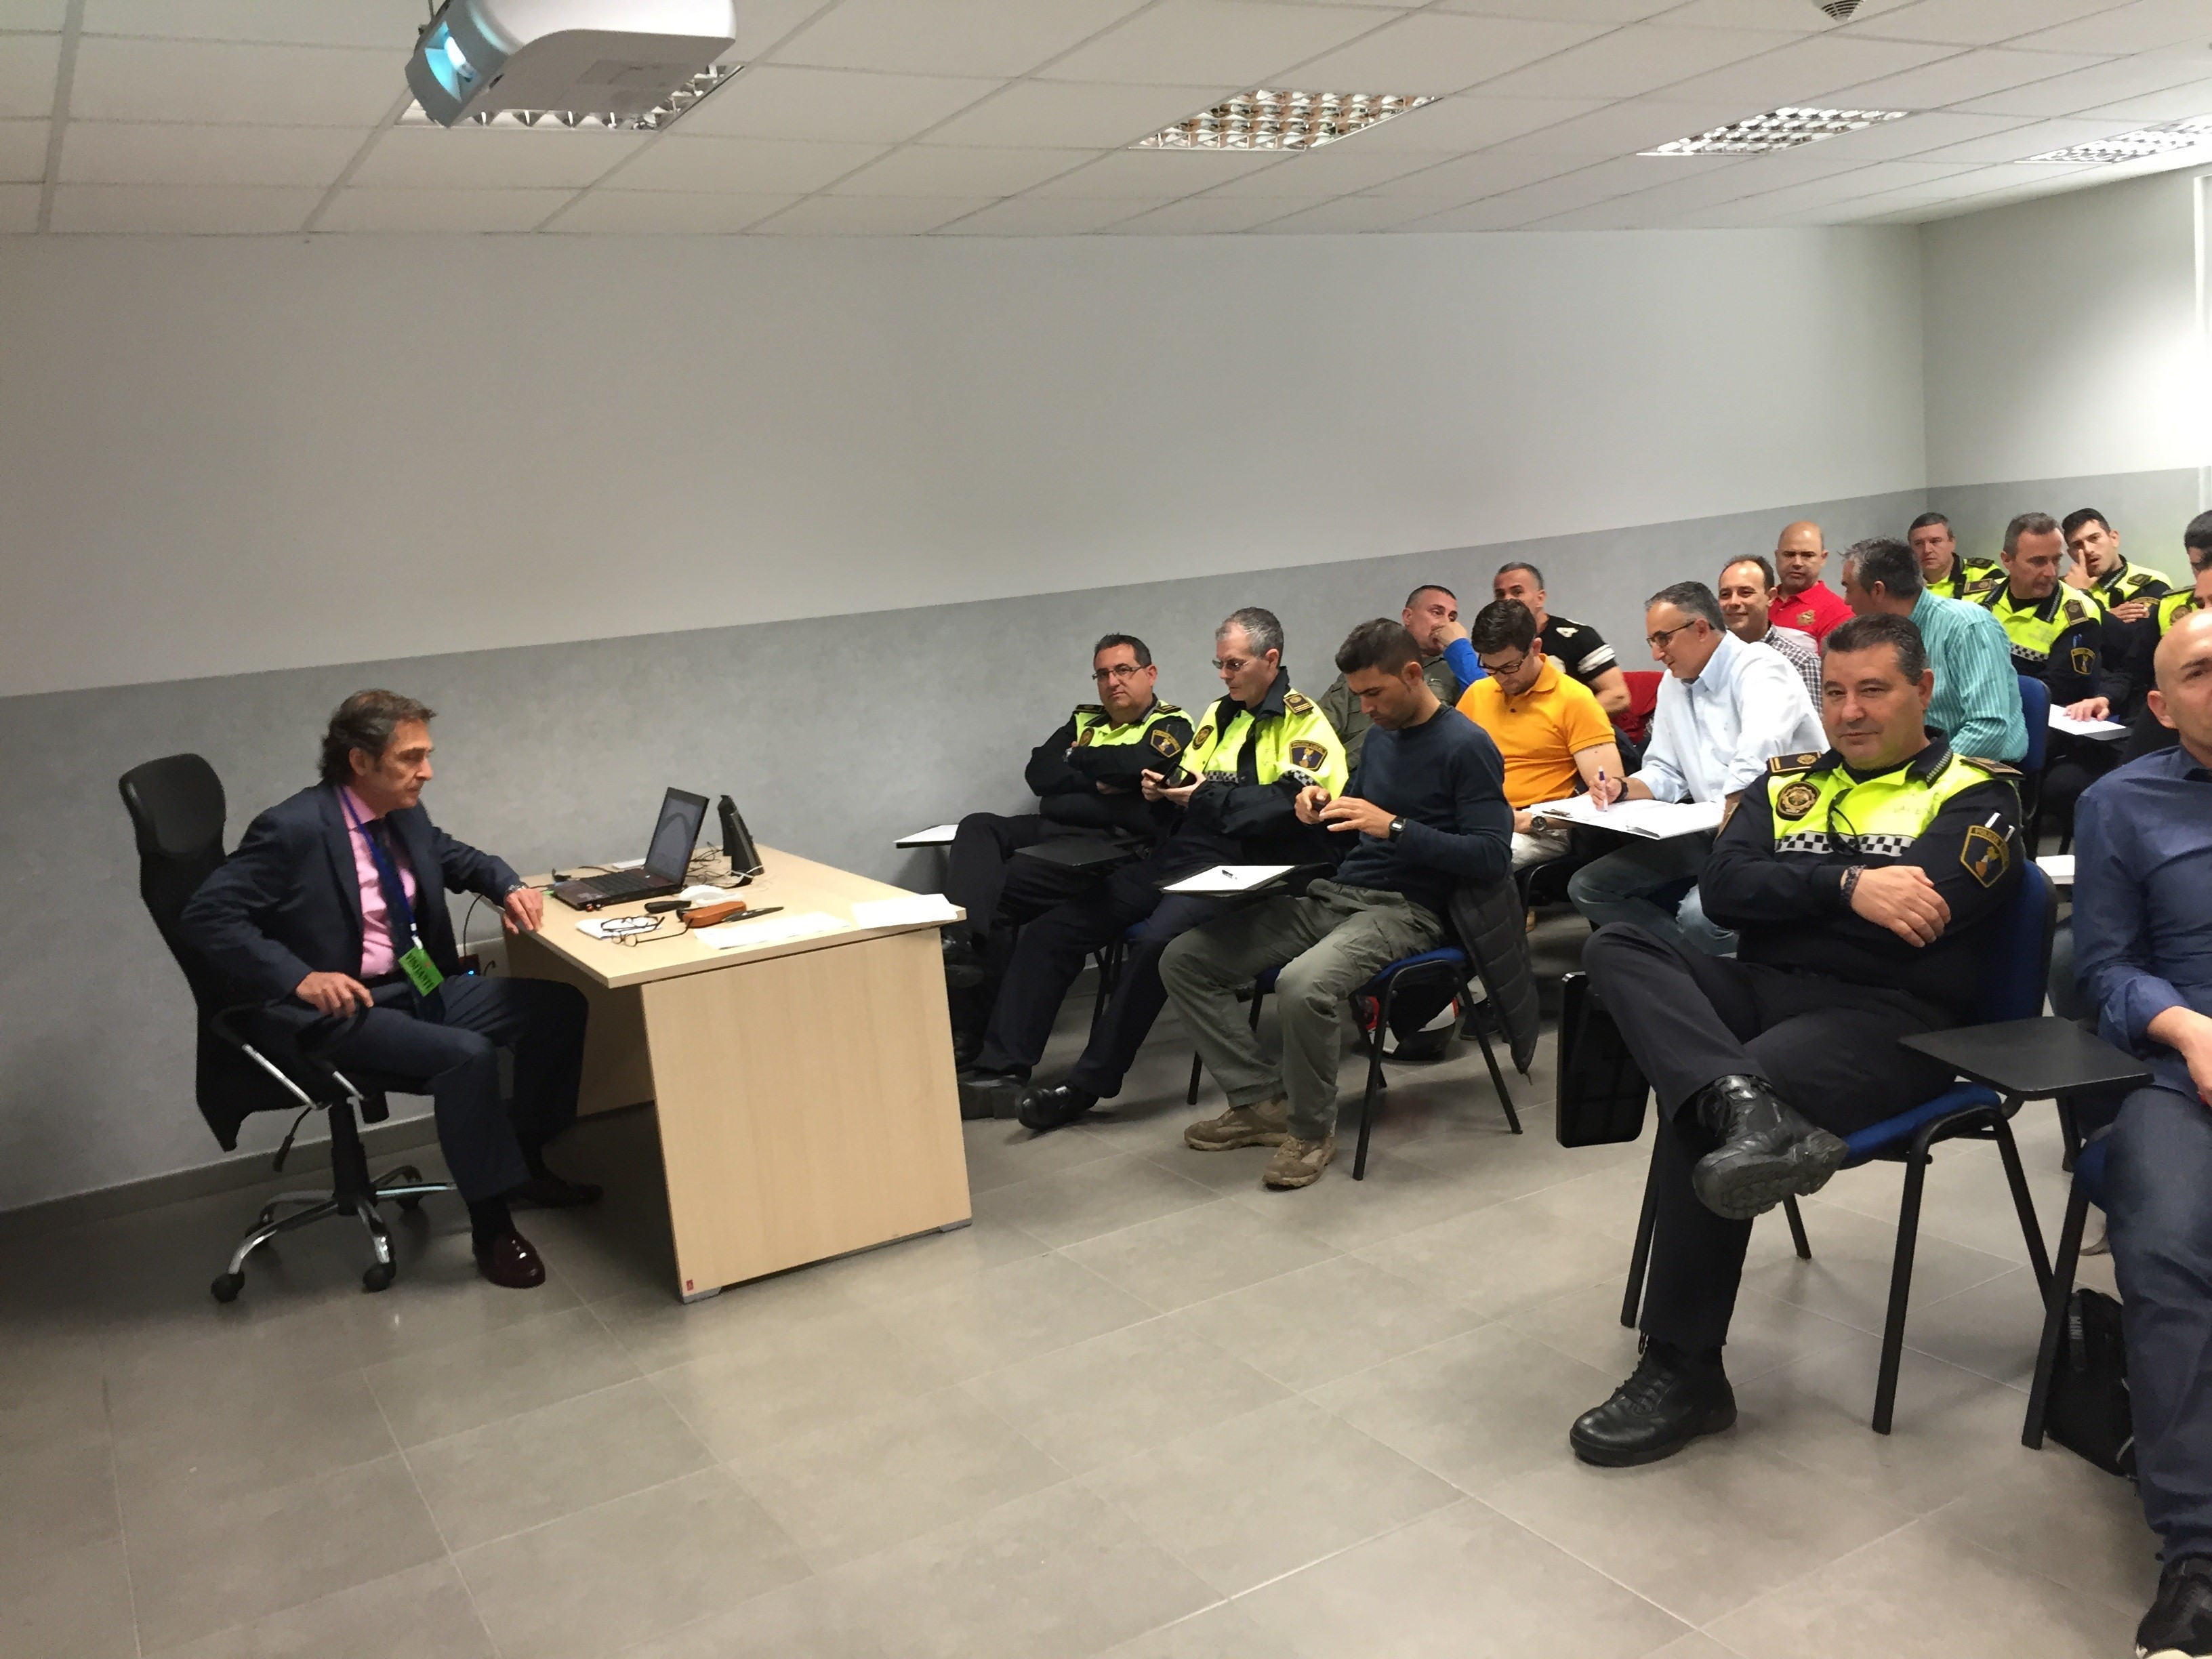 OFESAUTO ATTENDS AS SPEAKER A COURSE ABOUT COMPULSORY INSURANCE AND INTERNATIONAL TRAFFIC OF MOTOR VEHICLES IN THE VALENCIA´S LOCAL POLICE ACADEMY.